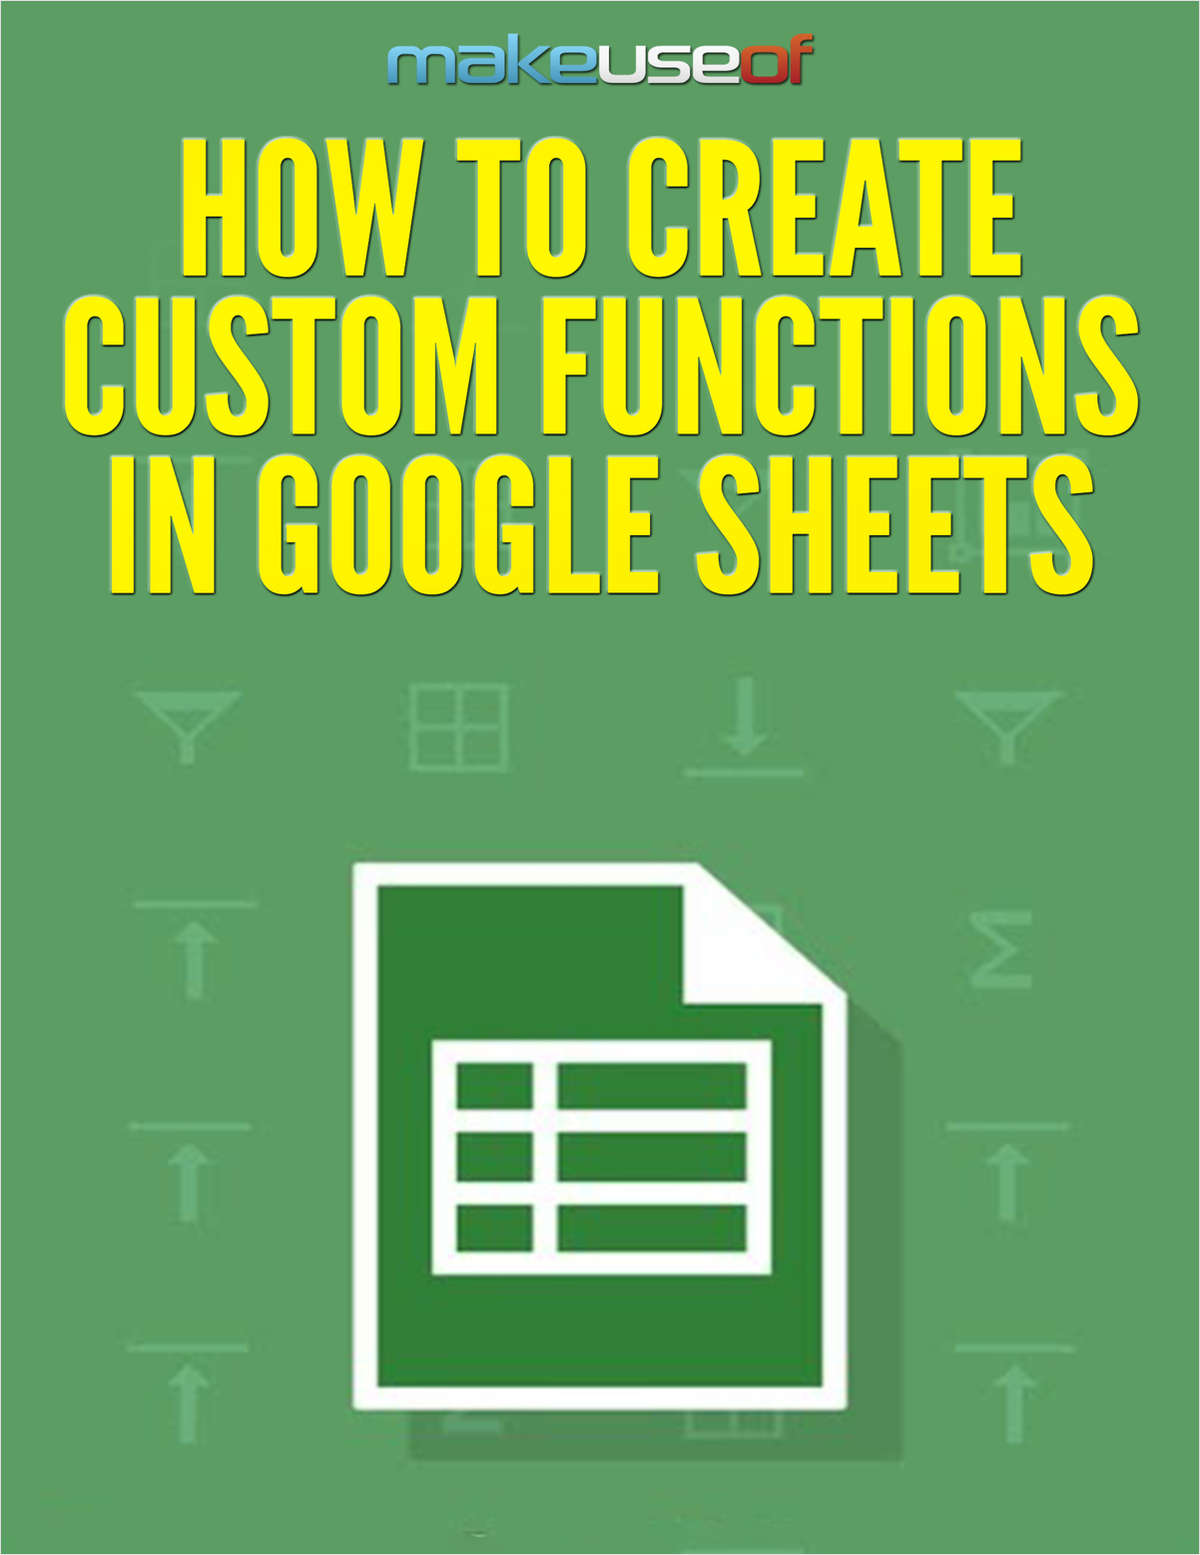 How to Create Custom Functions in Google Sheets